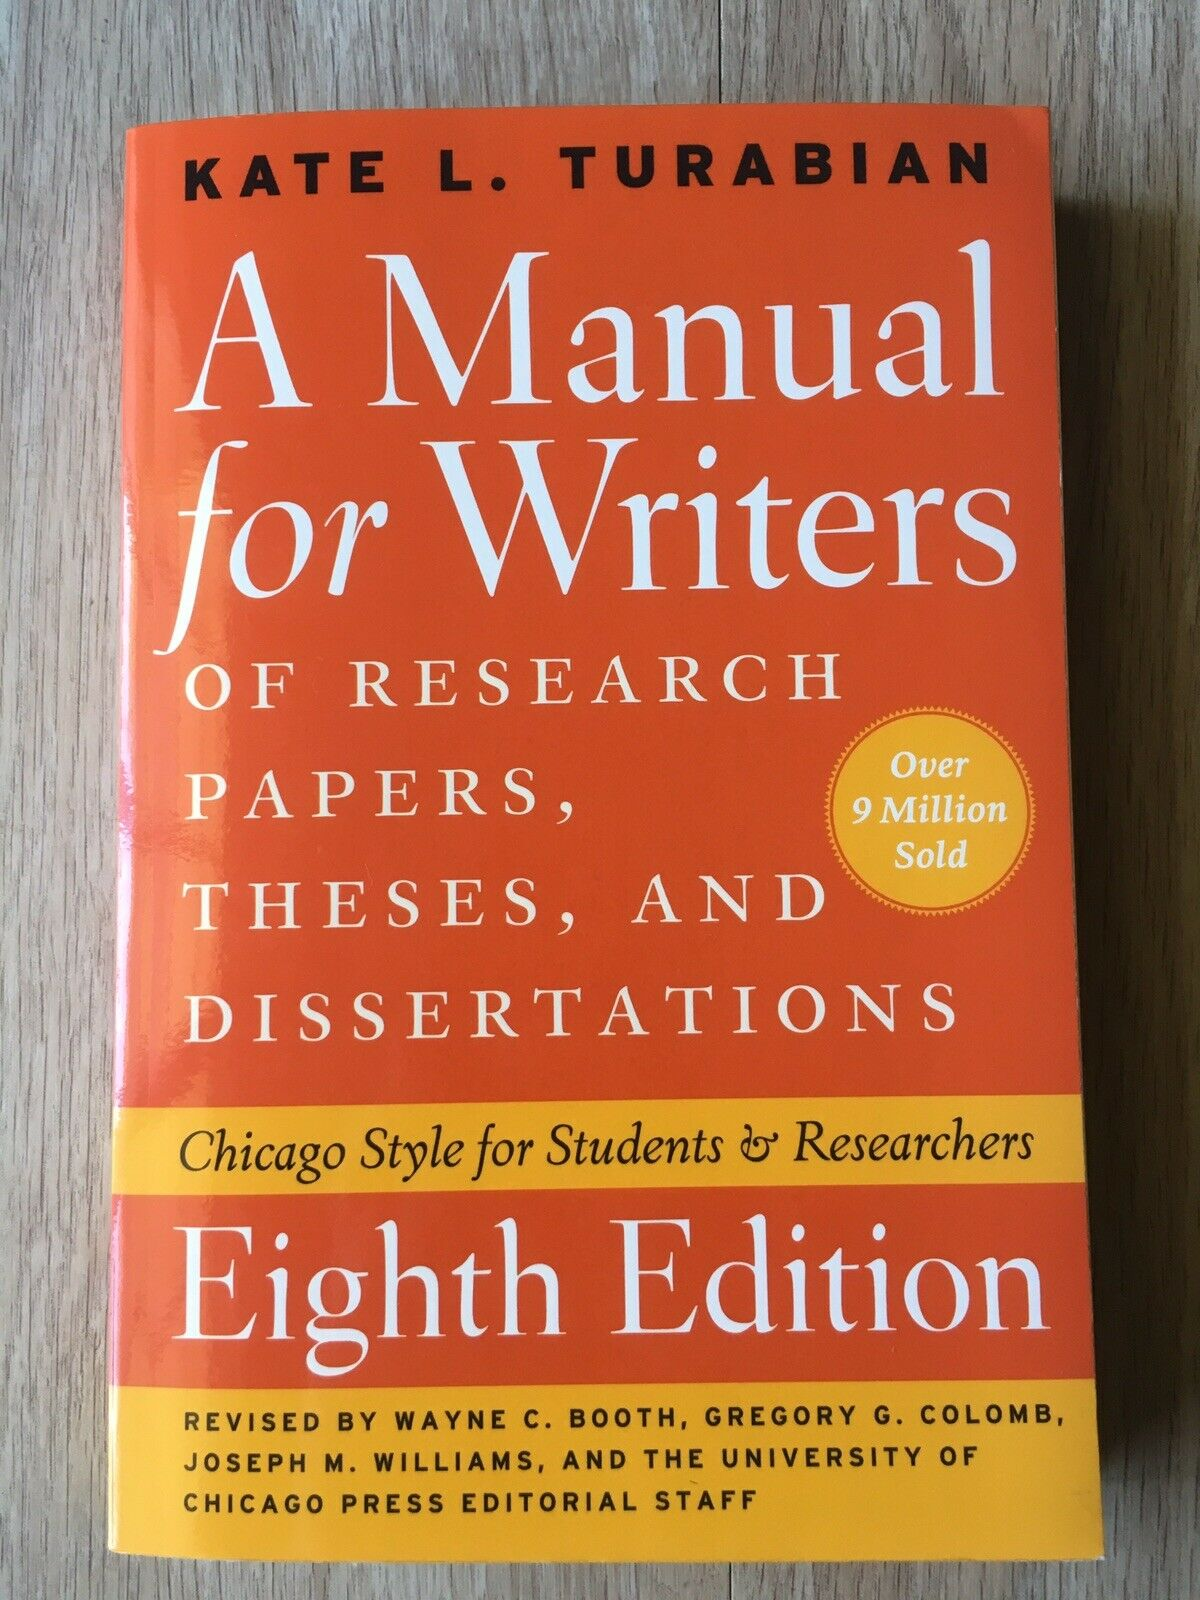 010 Manual For Writers Of Research Papers Theses And Dissertations By Kate L Turabian Paper S Sensational A L. Full